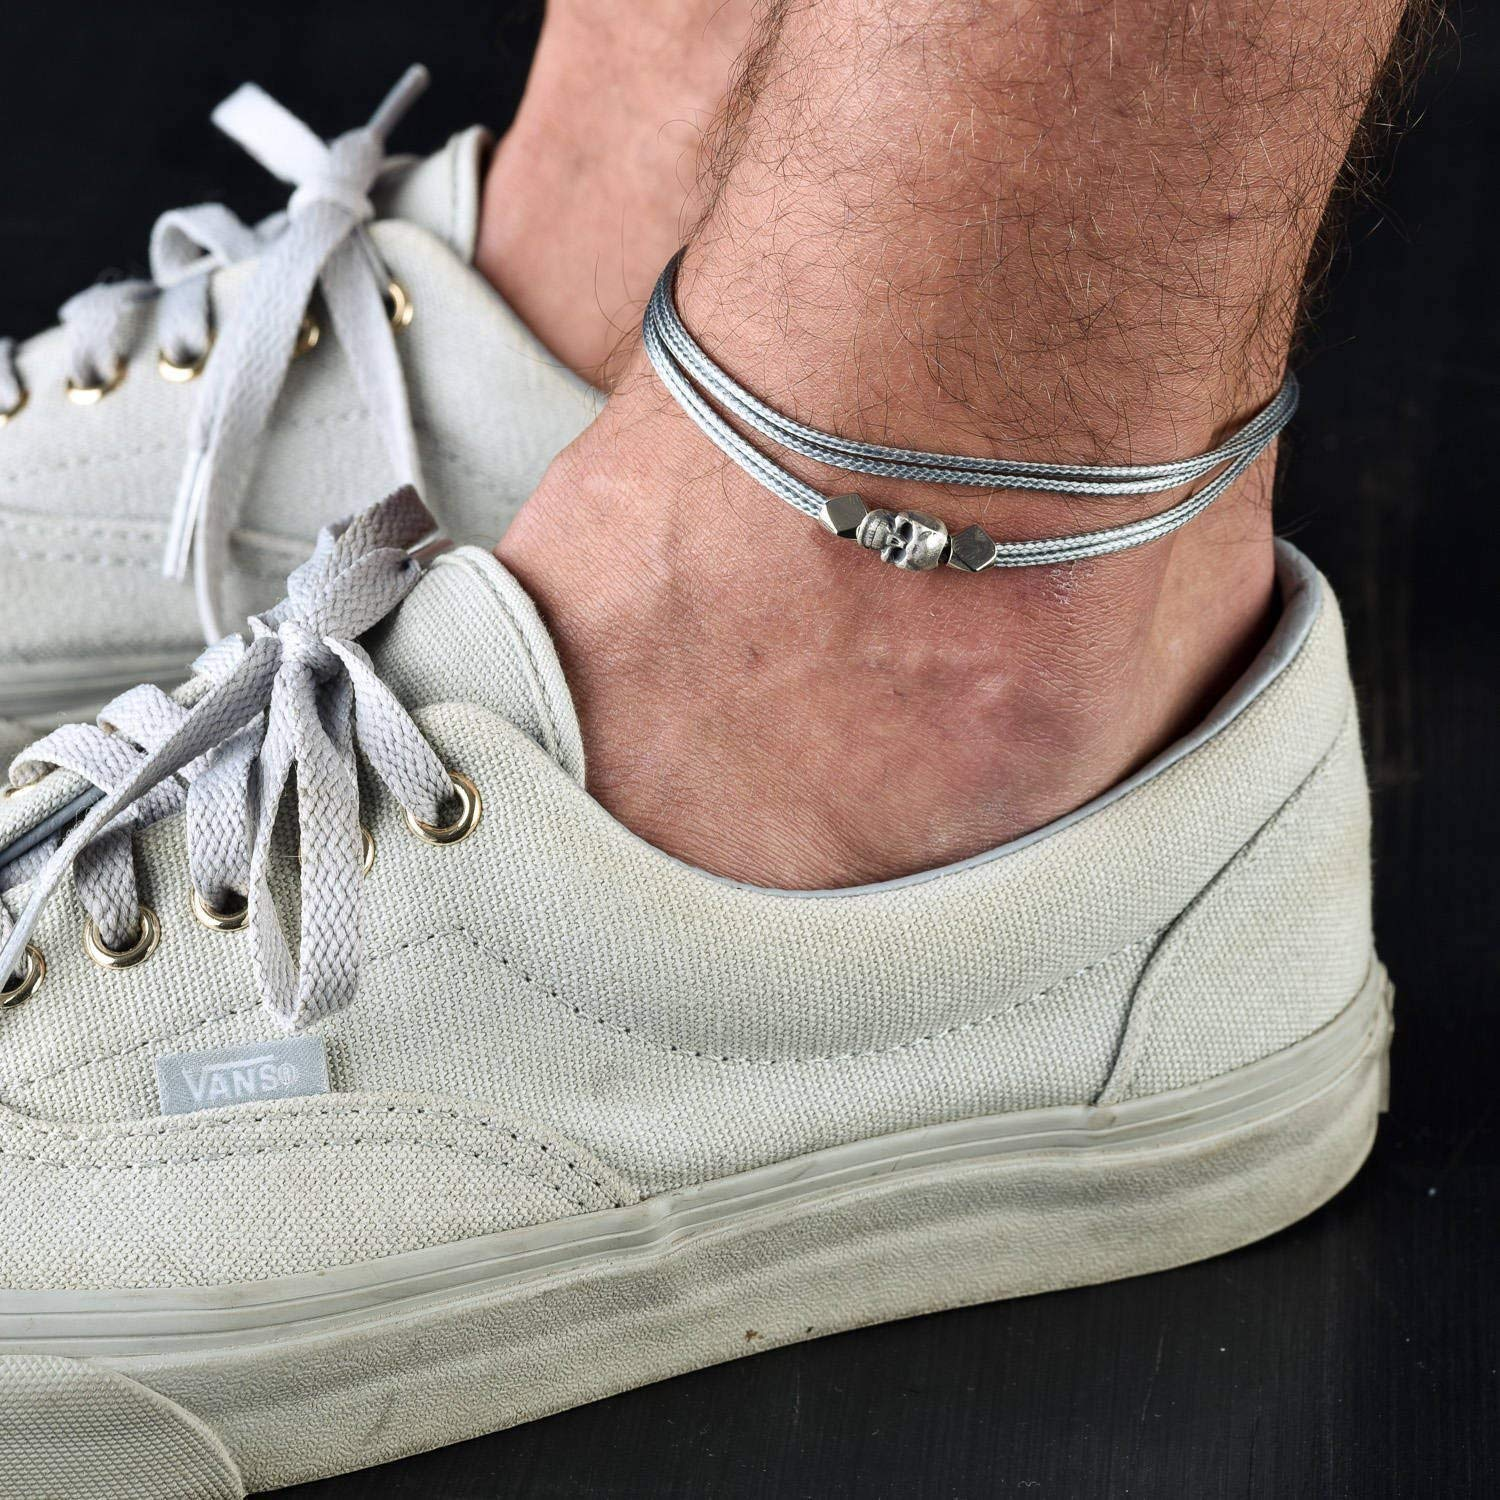 Handmade Gray Anklet For Men Set With Silver Plated Skull Pendant By Galis Jewelry - Ankle Bracelet For Men - Skull Anklet For Men